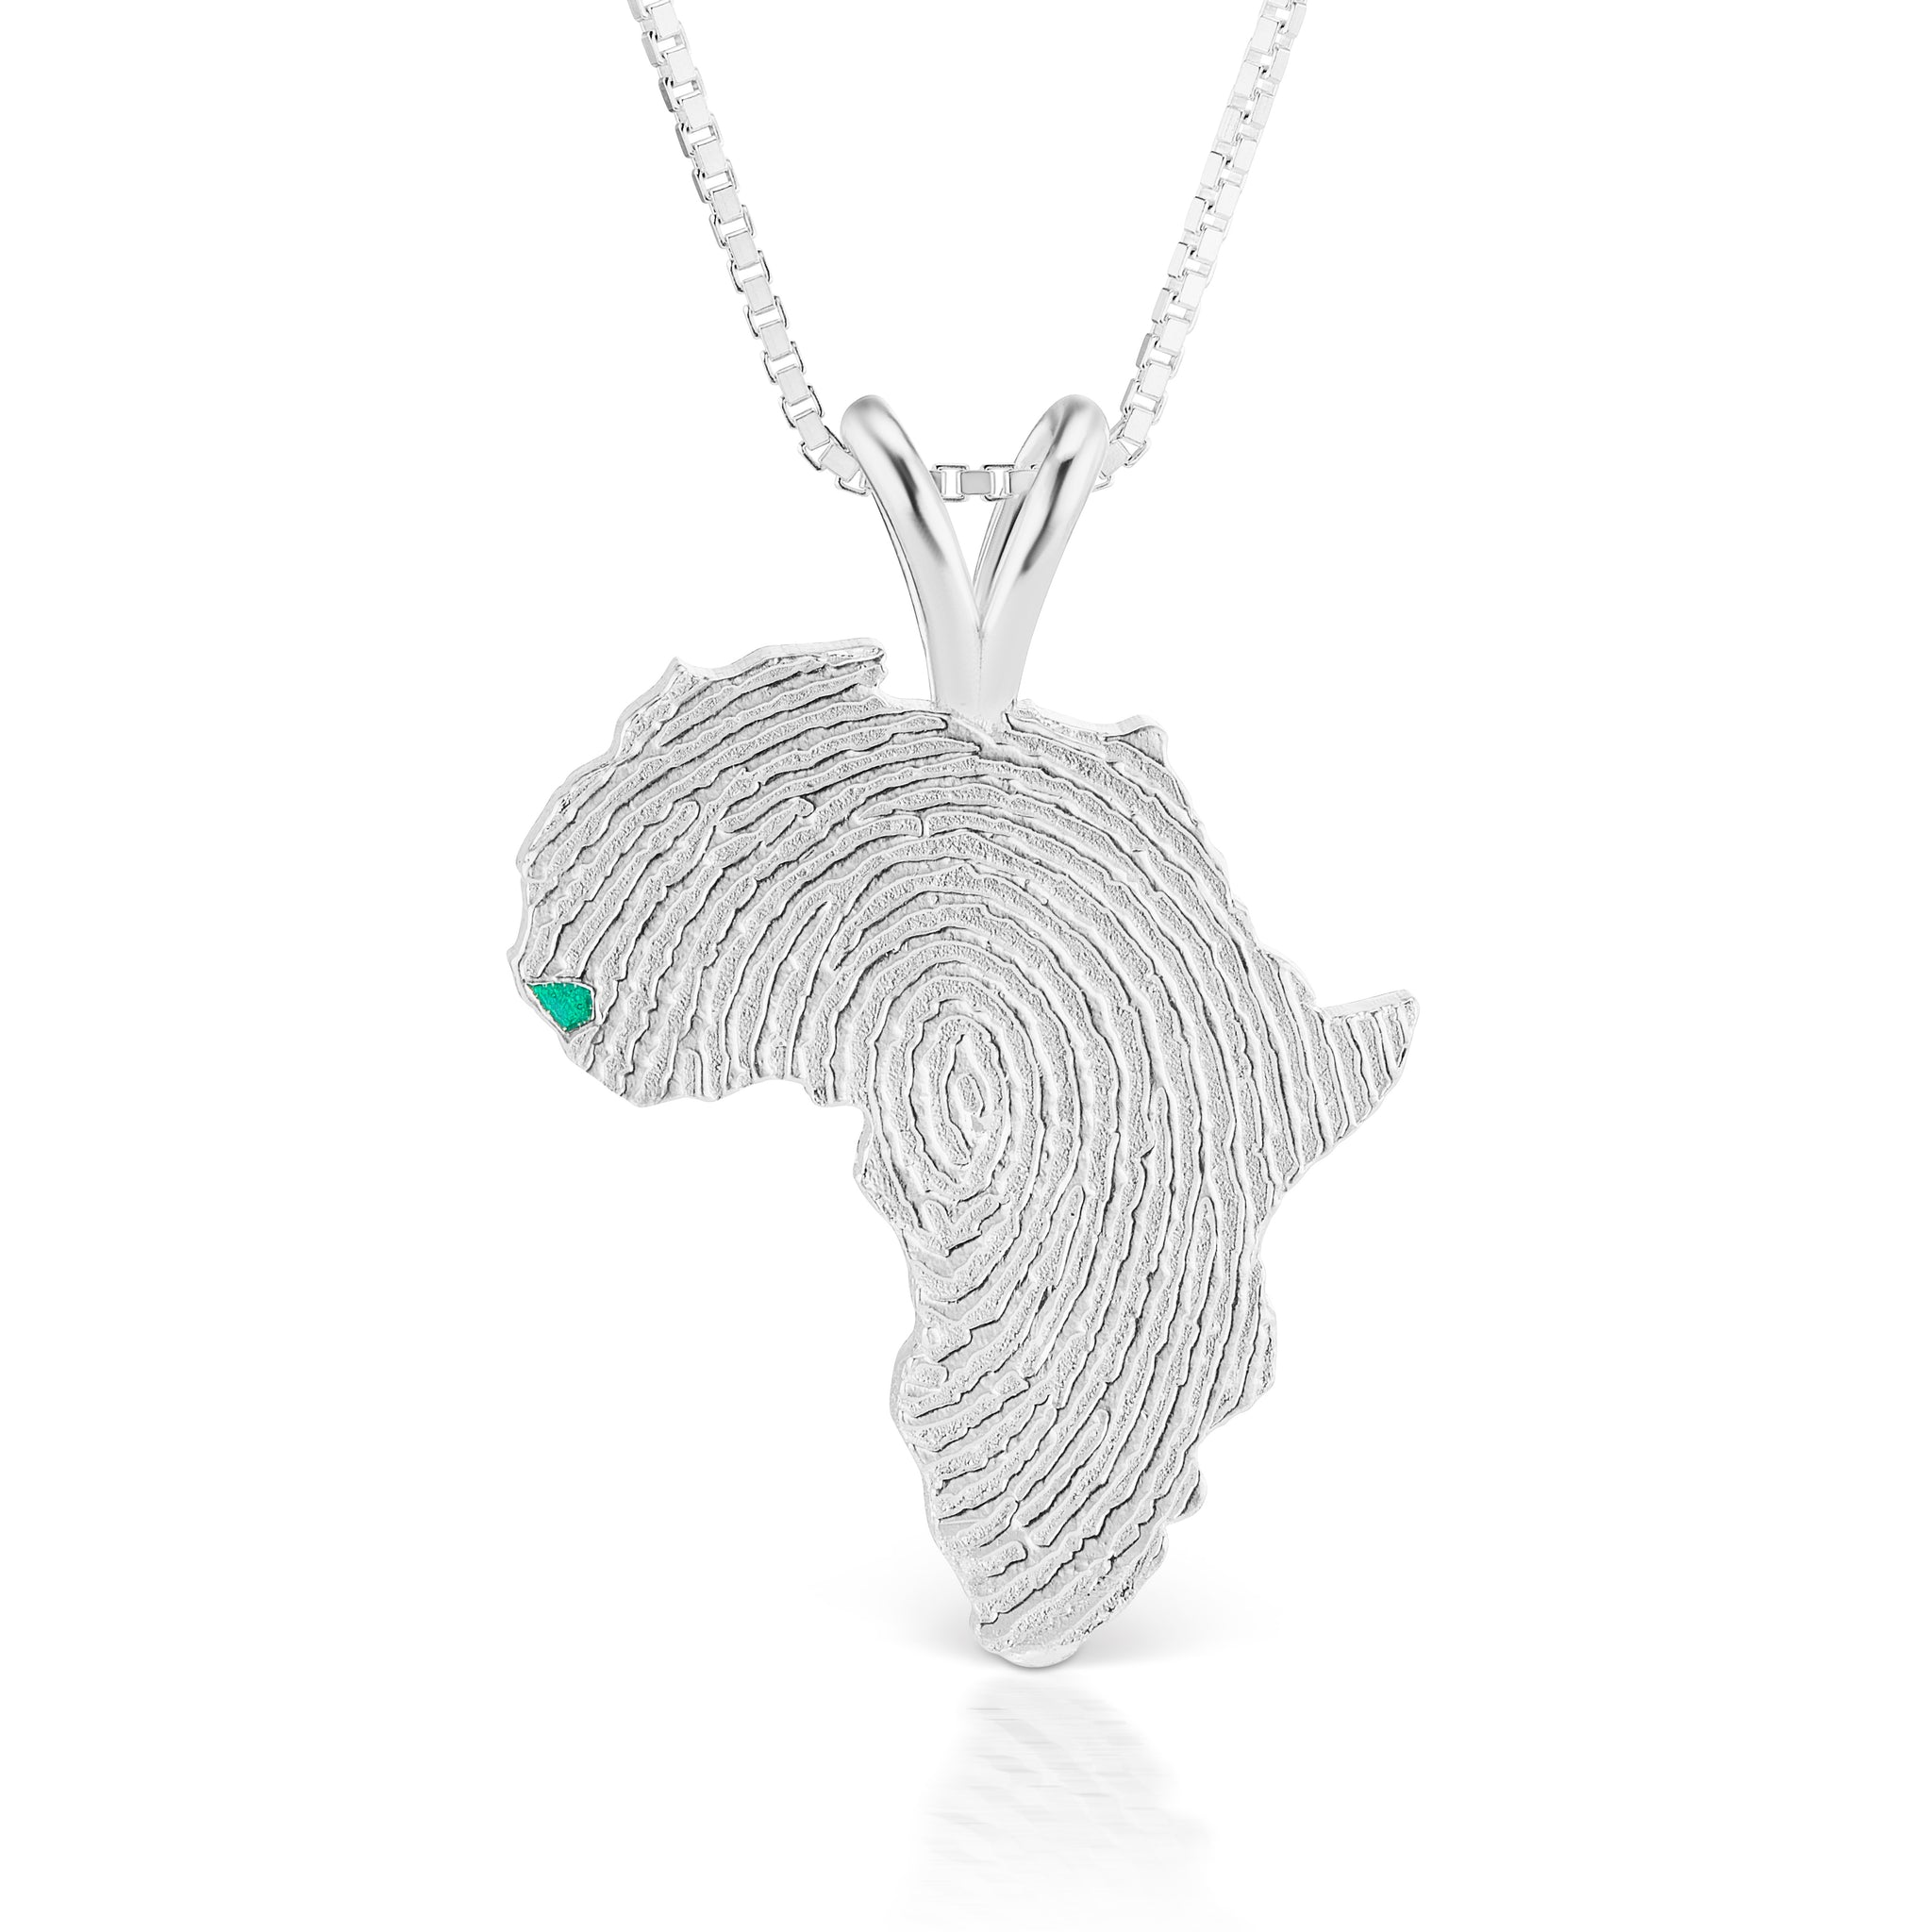 Guinea-Bissau Heirloom Pendant - Sterling Silver 34mm